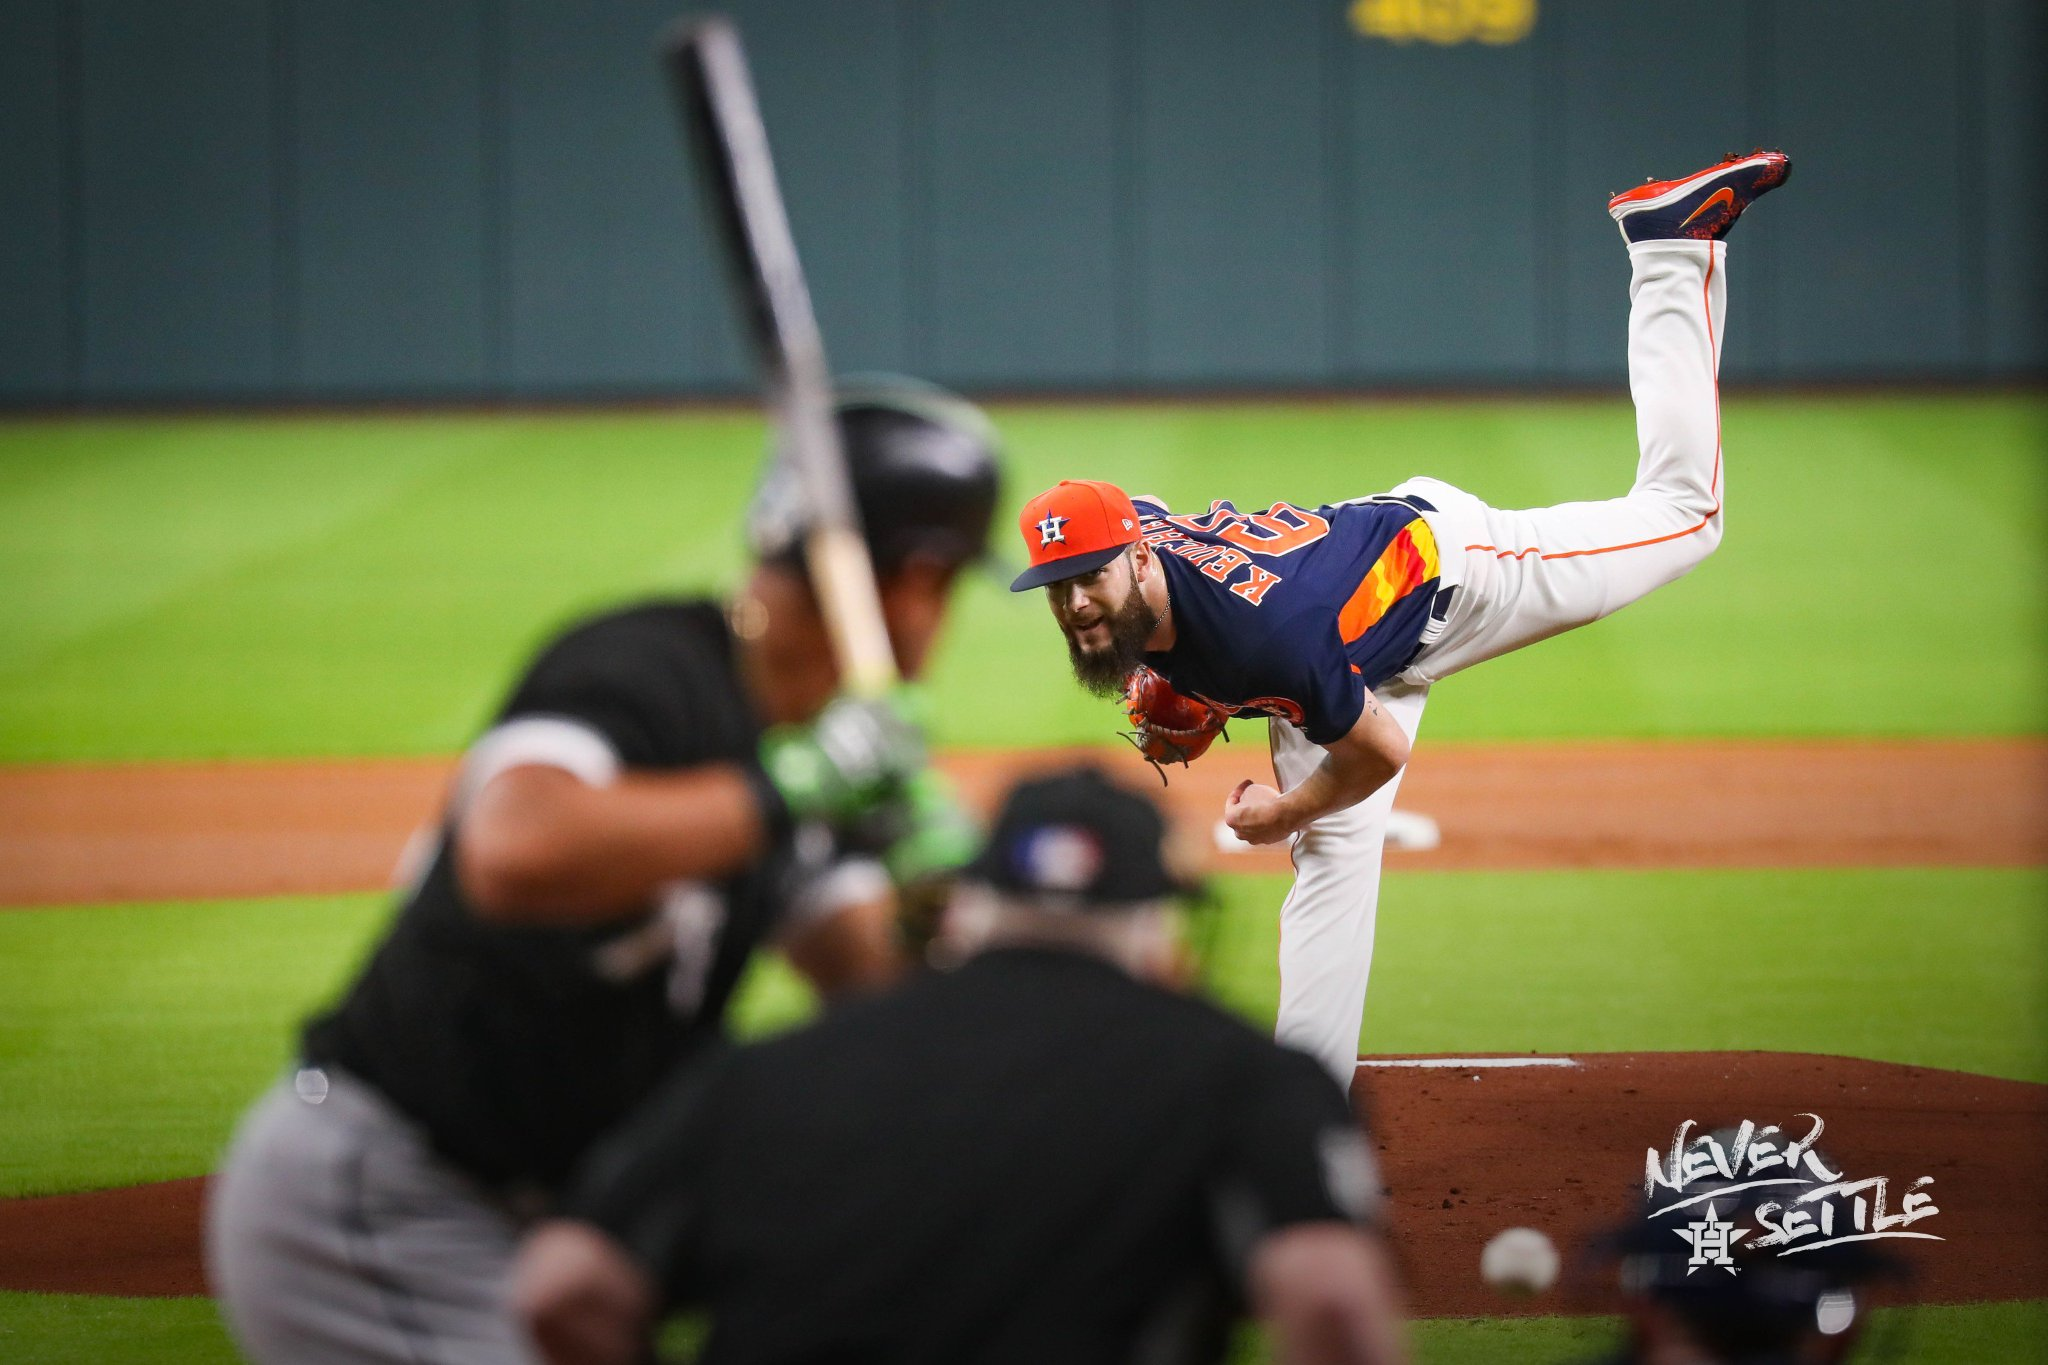 Scoreless through three complete. #NeverSettle https://t.co/2Ccxp9kdoN